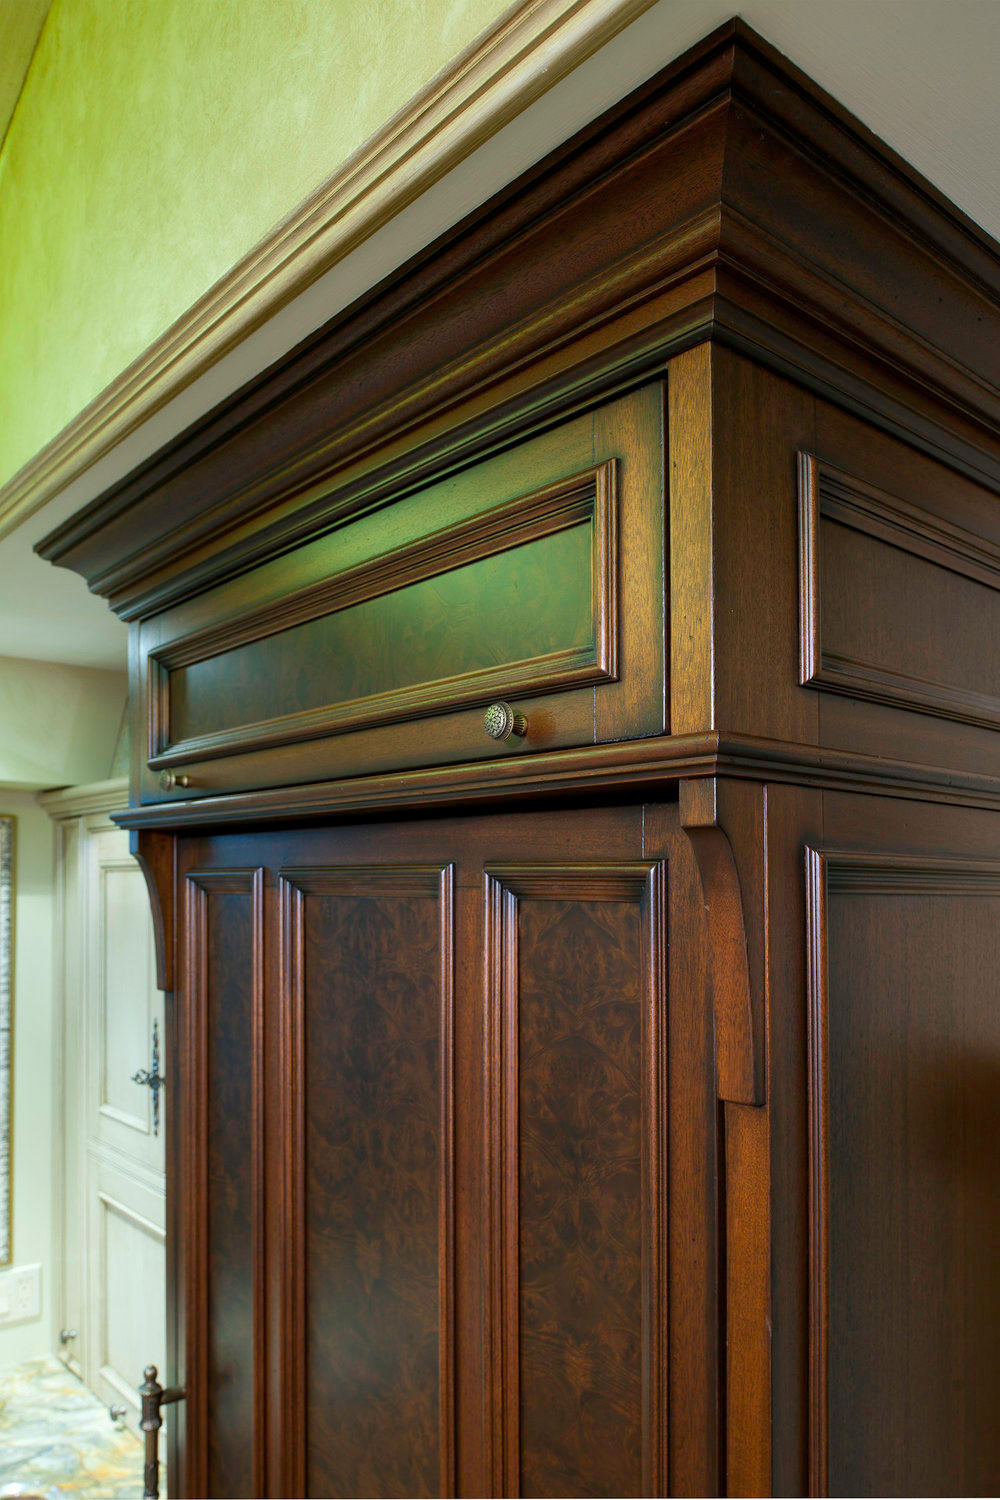 kitchen_bath_Concepts_pittsburgh_traditional_home5_10.jpg